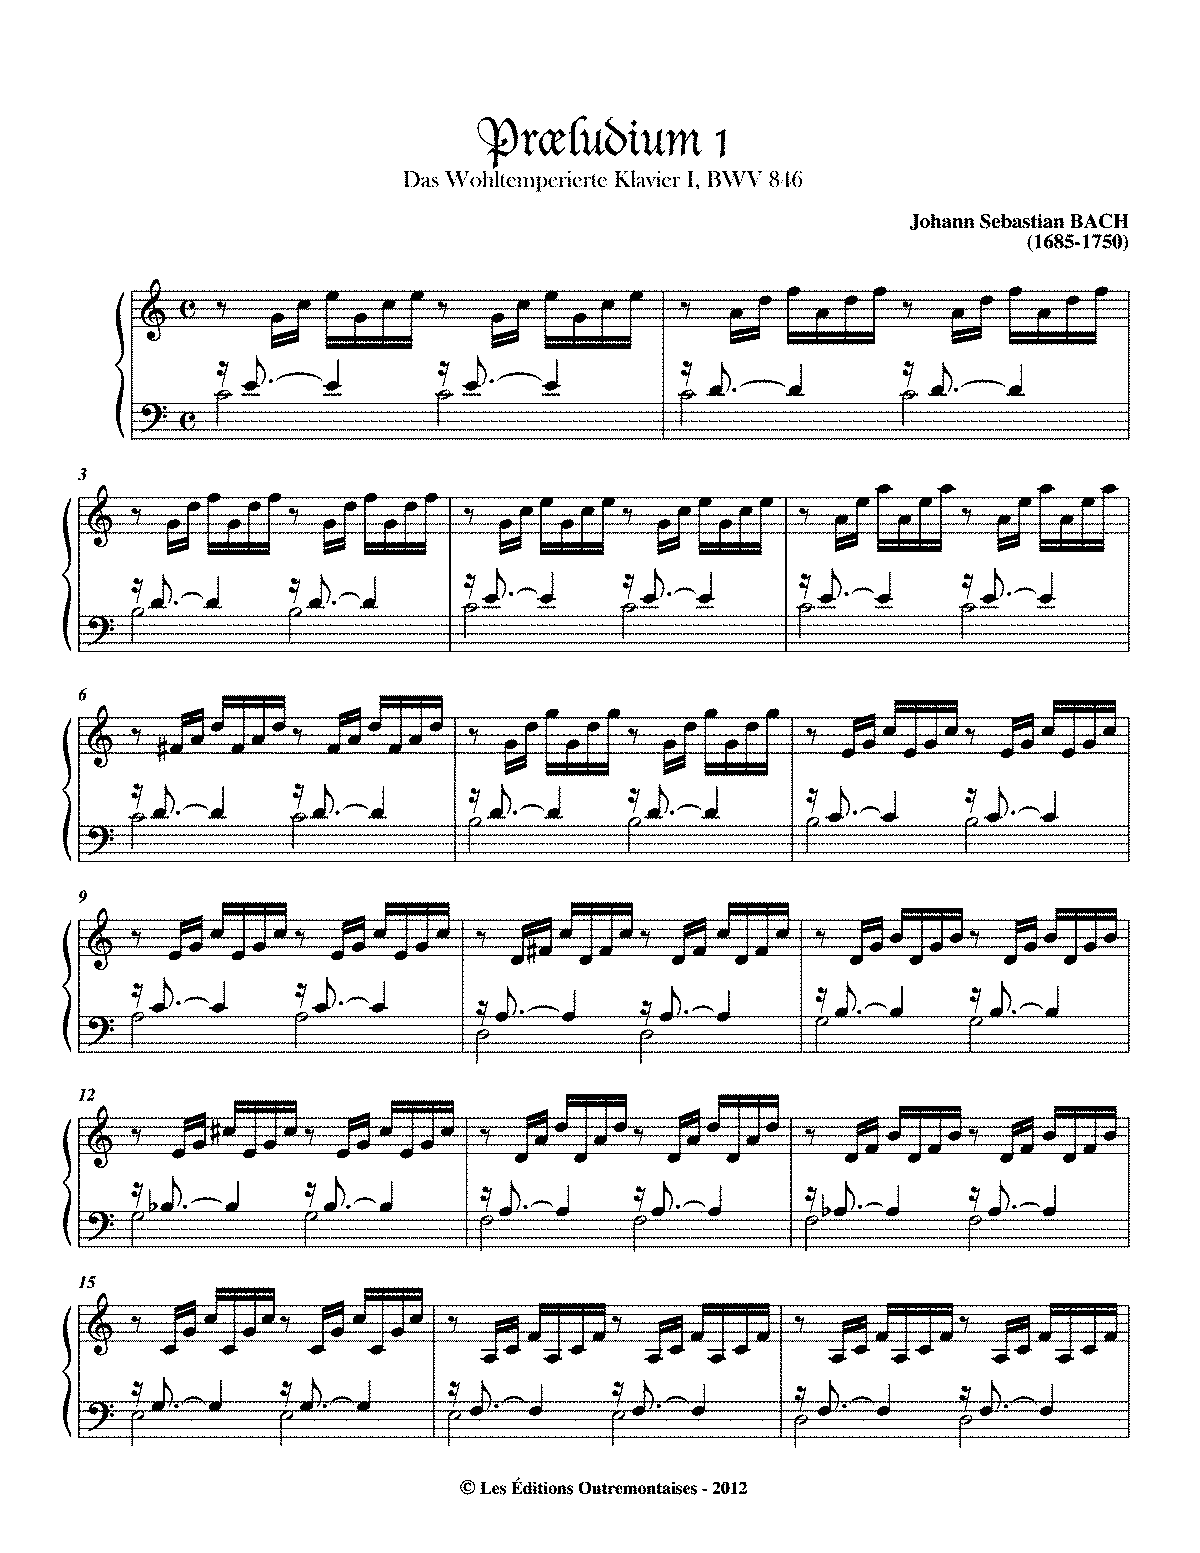 prelude and fugue in c major bwv 846 bach johann